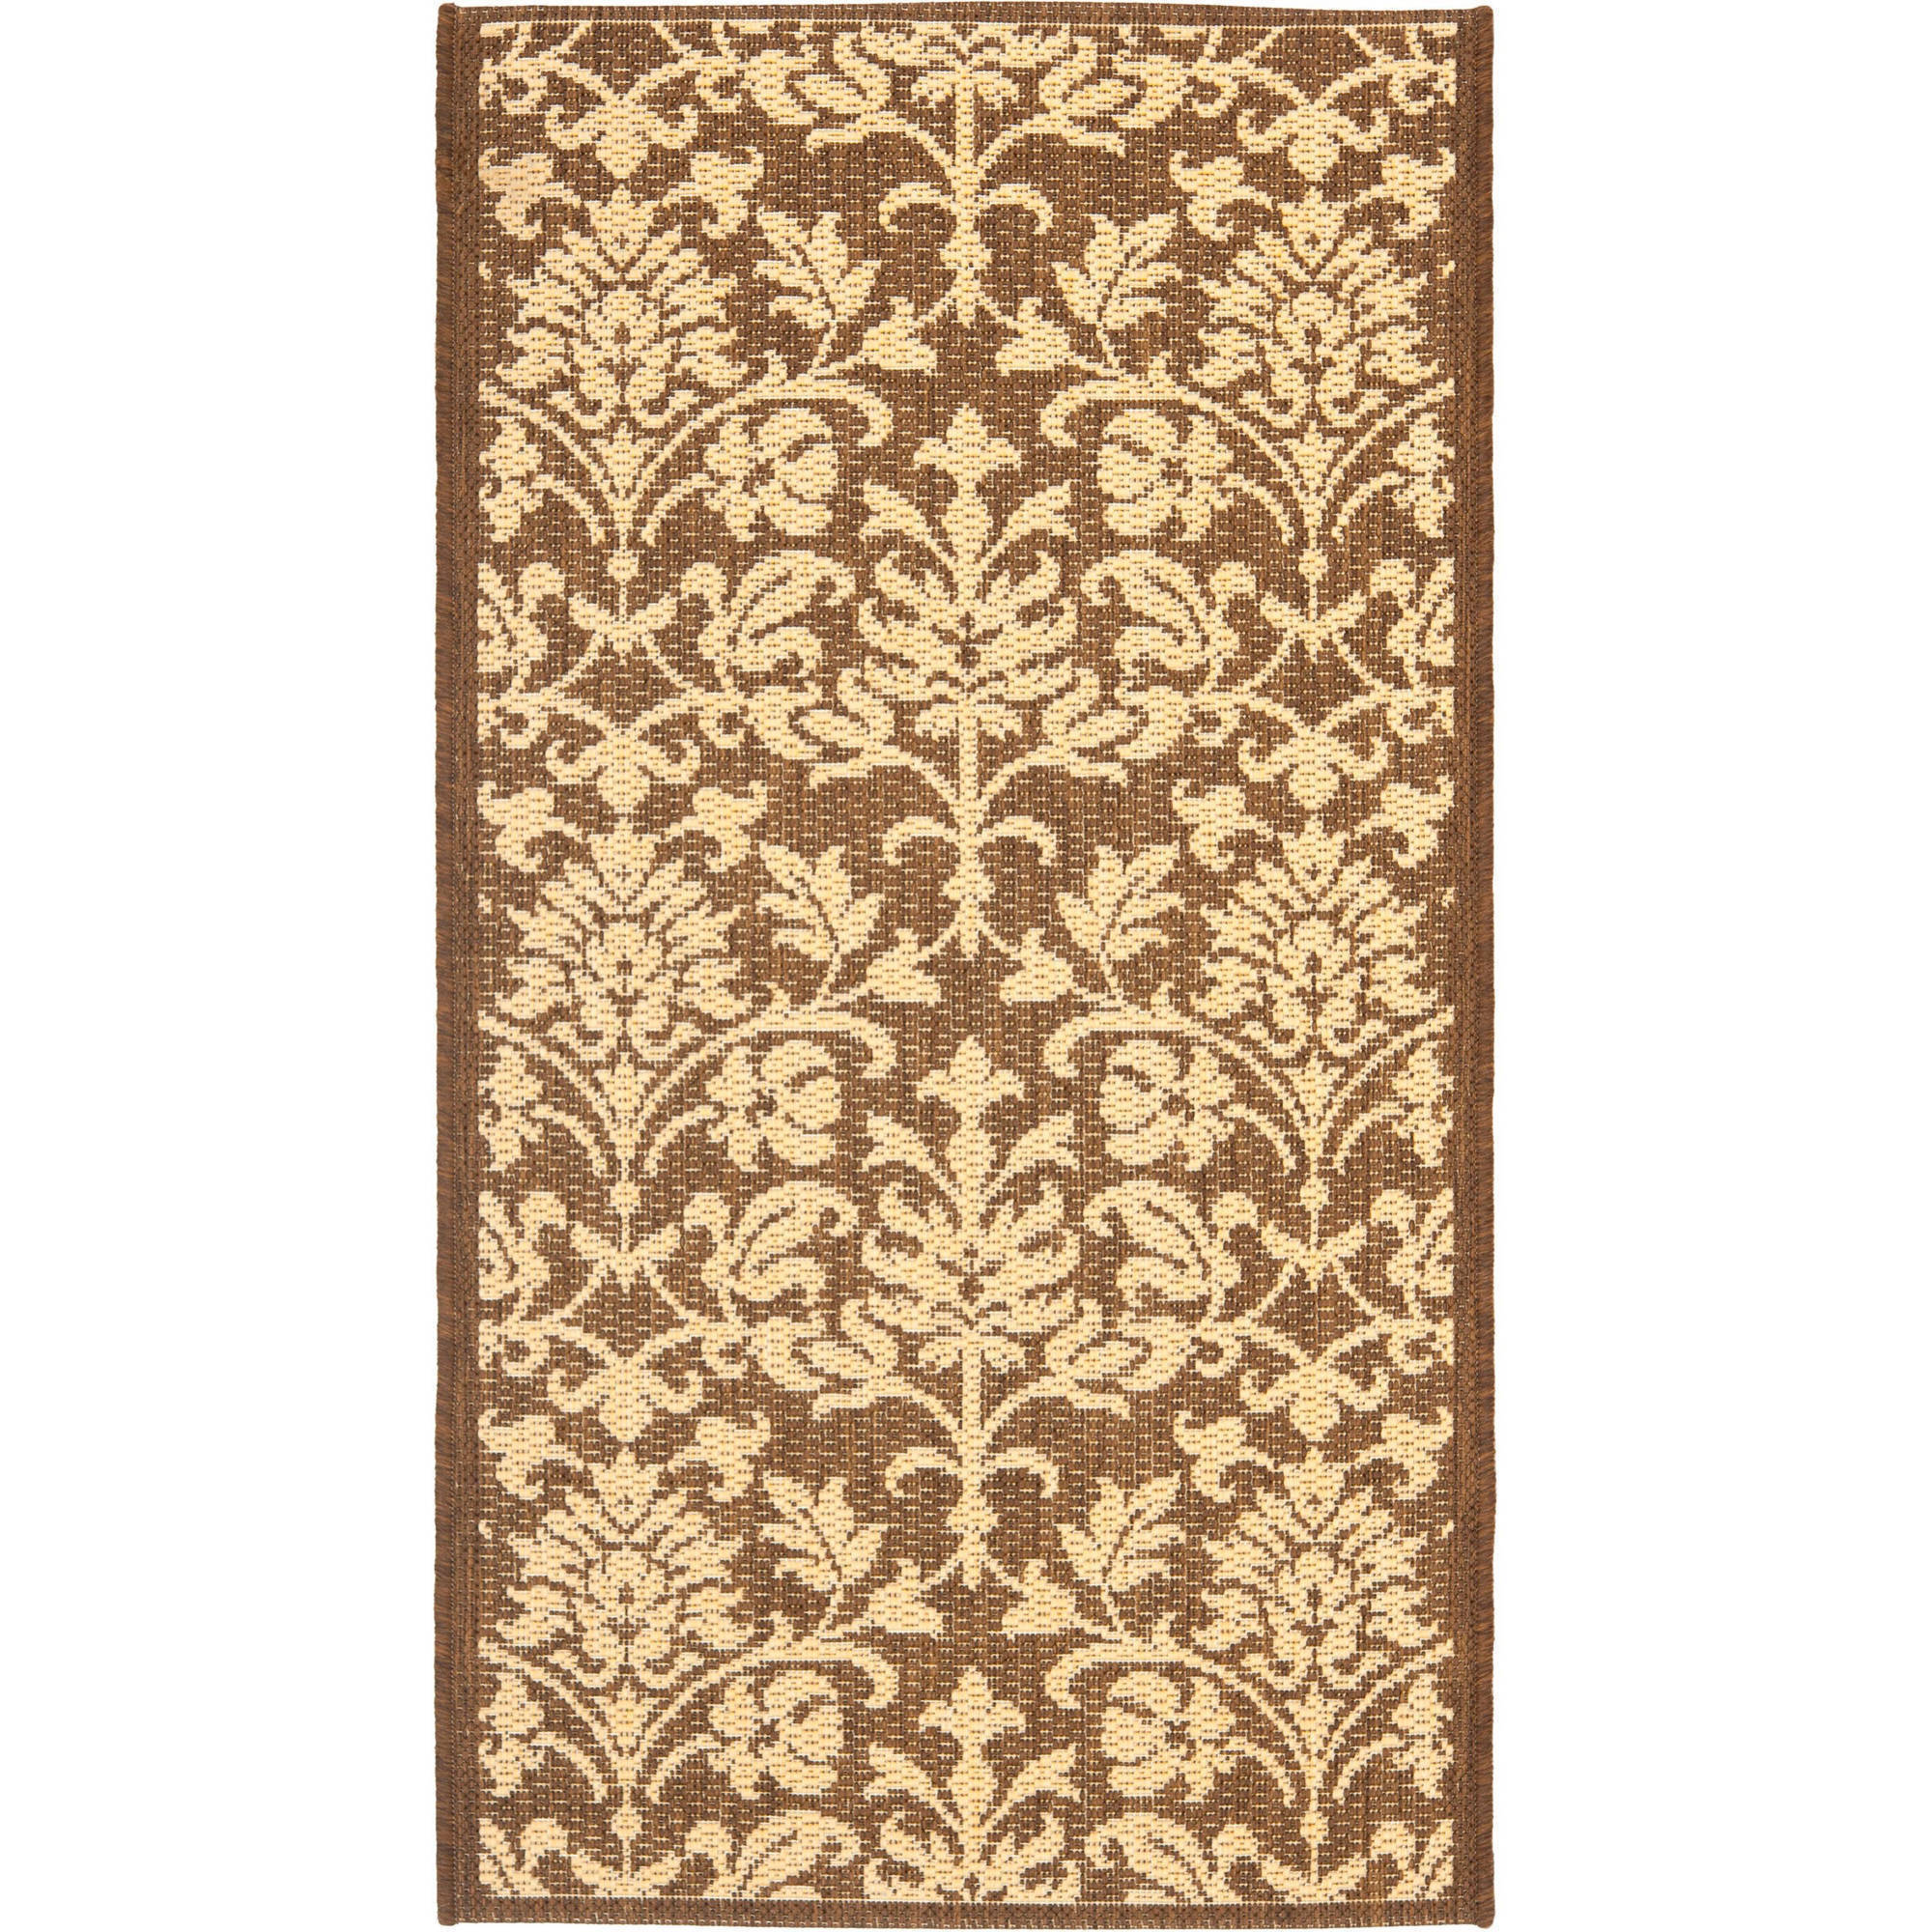 Resorts Area Indoor/Outdoor Rug, Chocolate/Natural